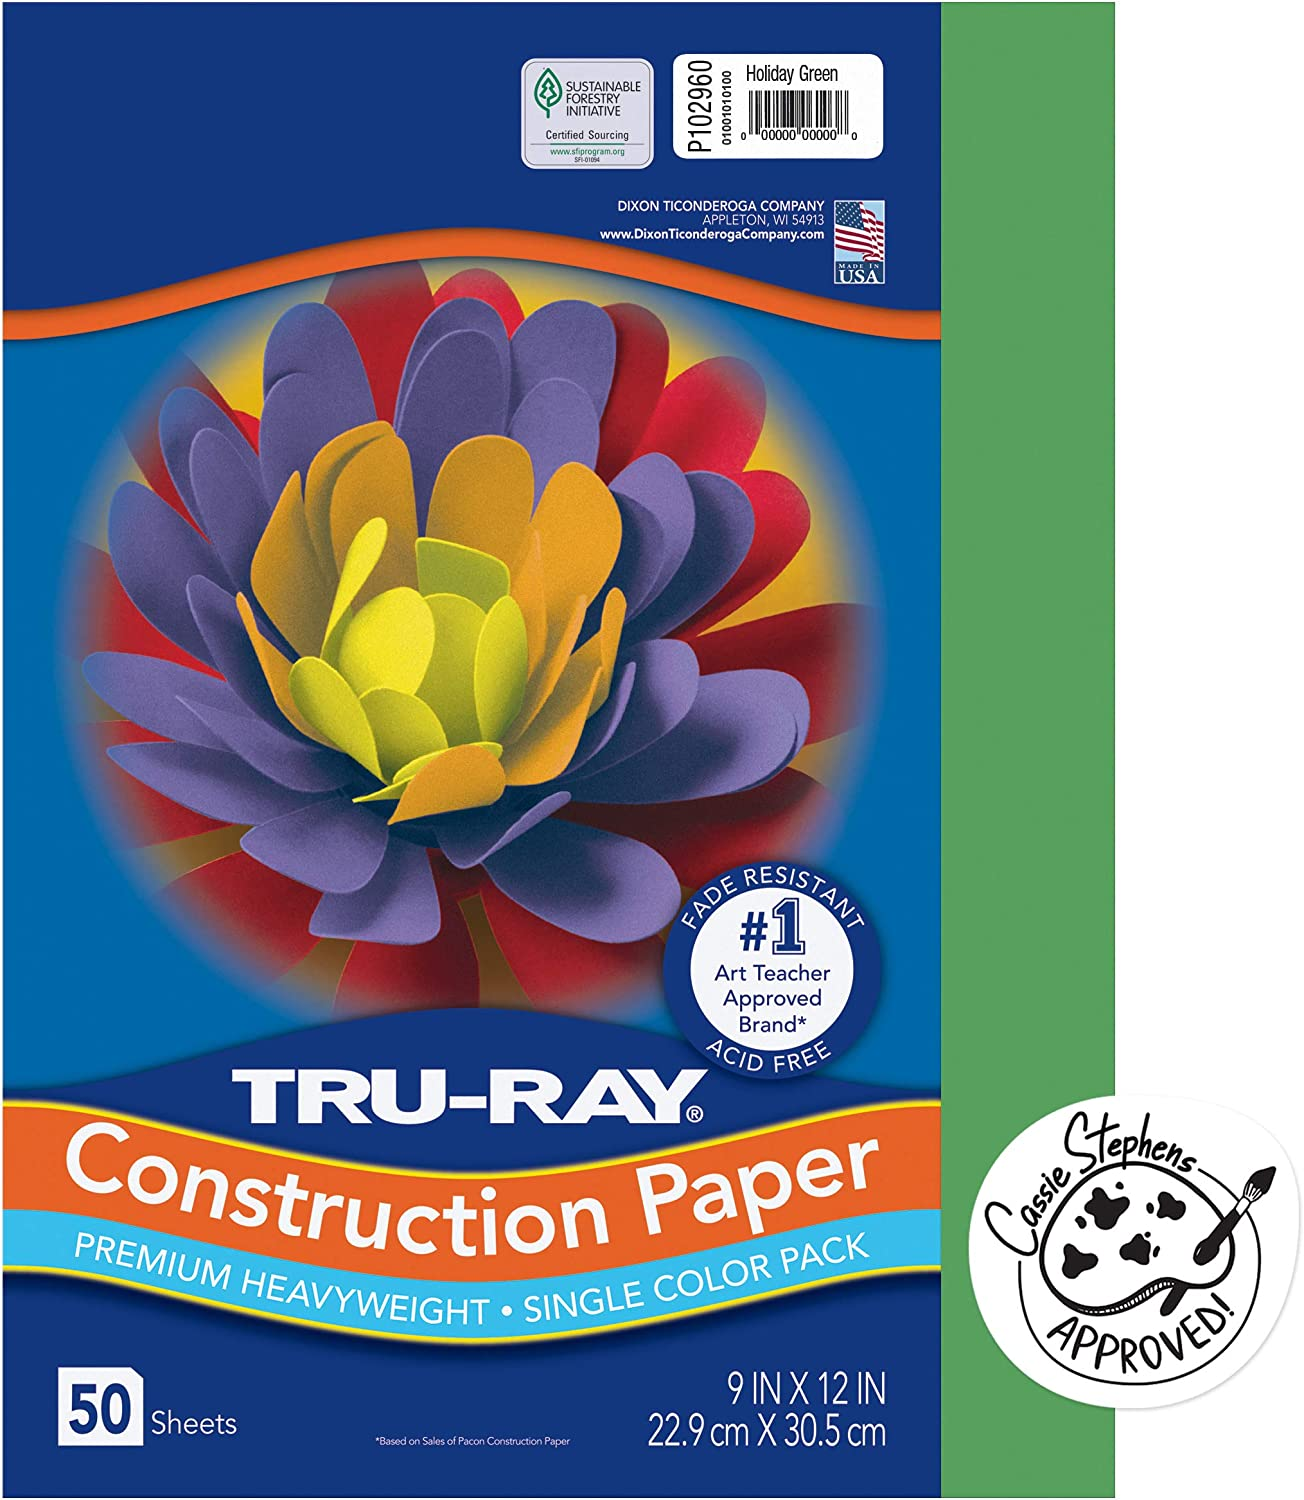 Tru-Ray Heavyweight New mail order Construction Paper Holiday Free shipping 12